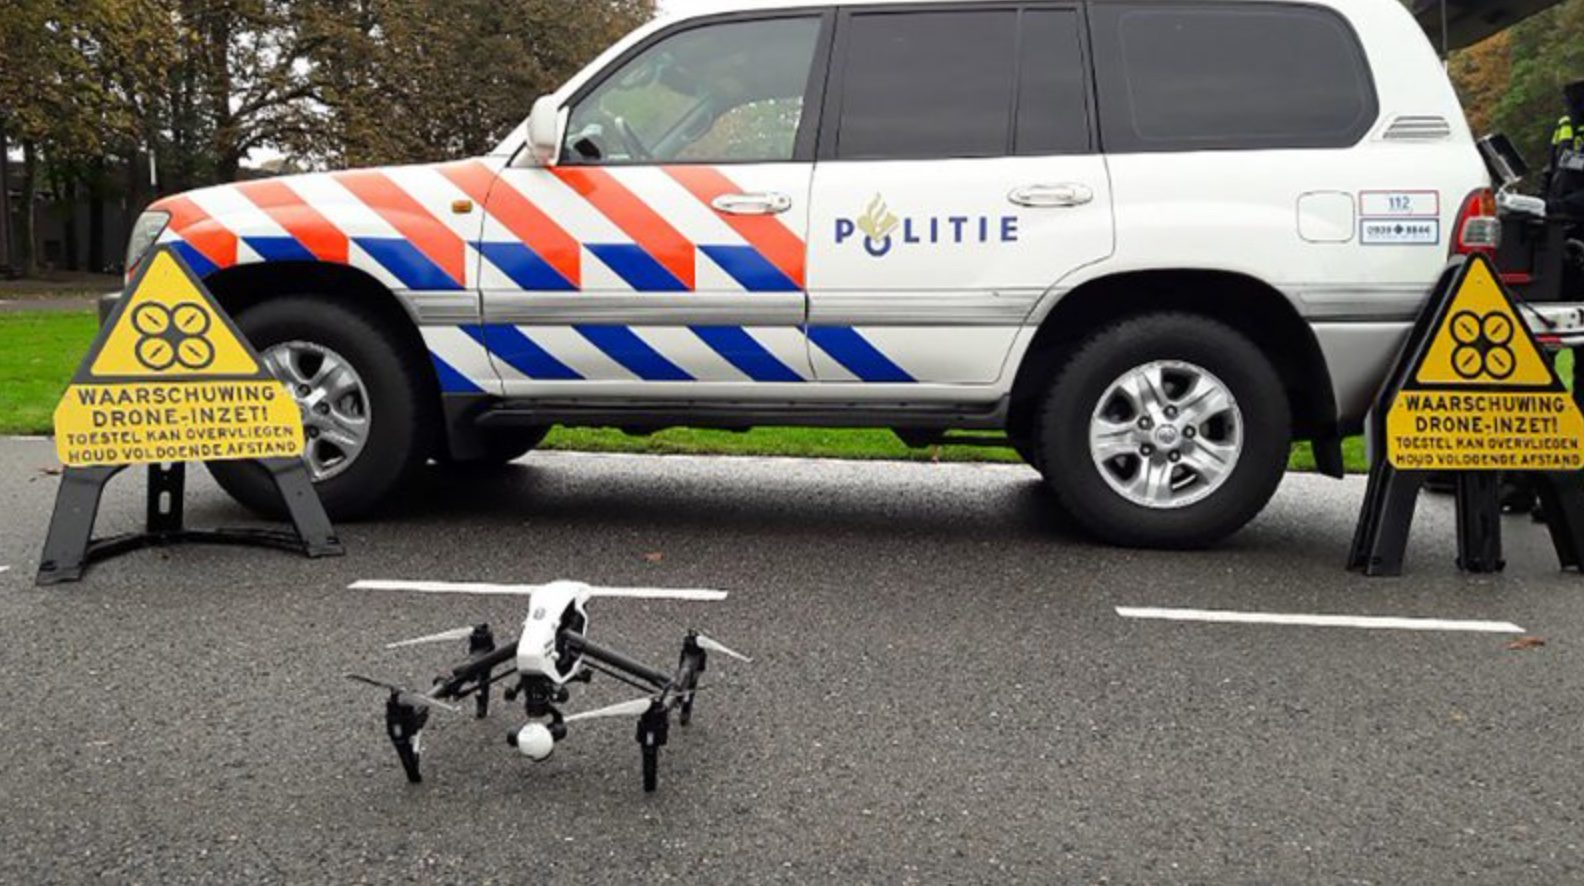 Dutch police will significantly expand drone fleet